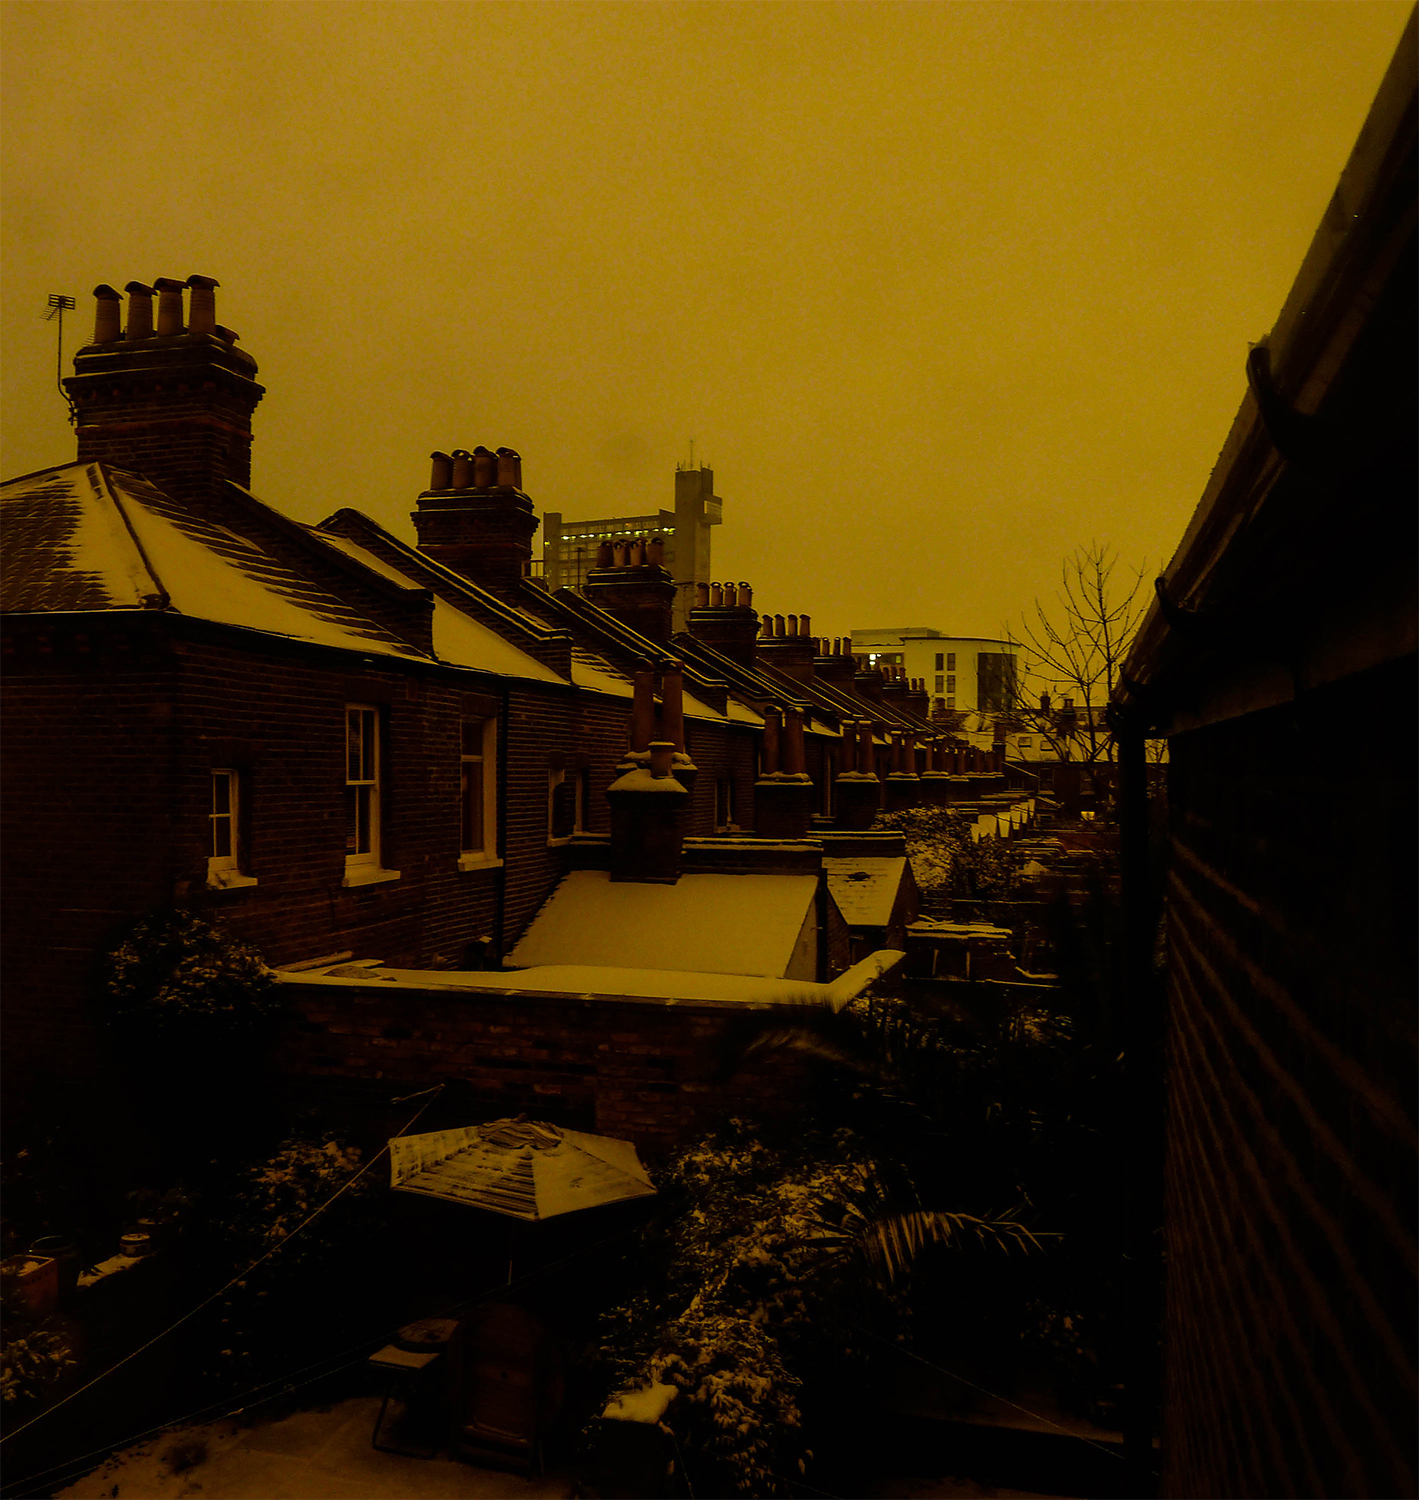 <p>Snow coats a row of homes along Kensal Town's First Avenue, with the Trellick Tower in the distance.</p>